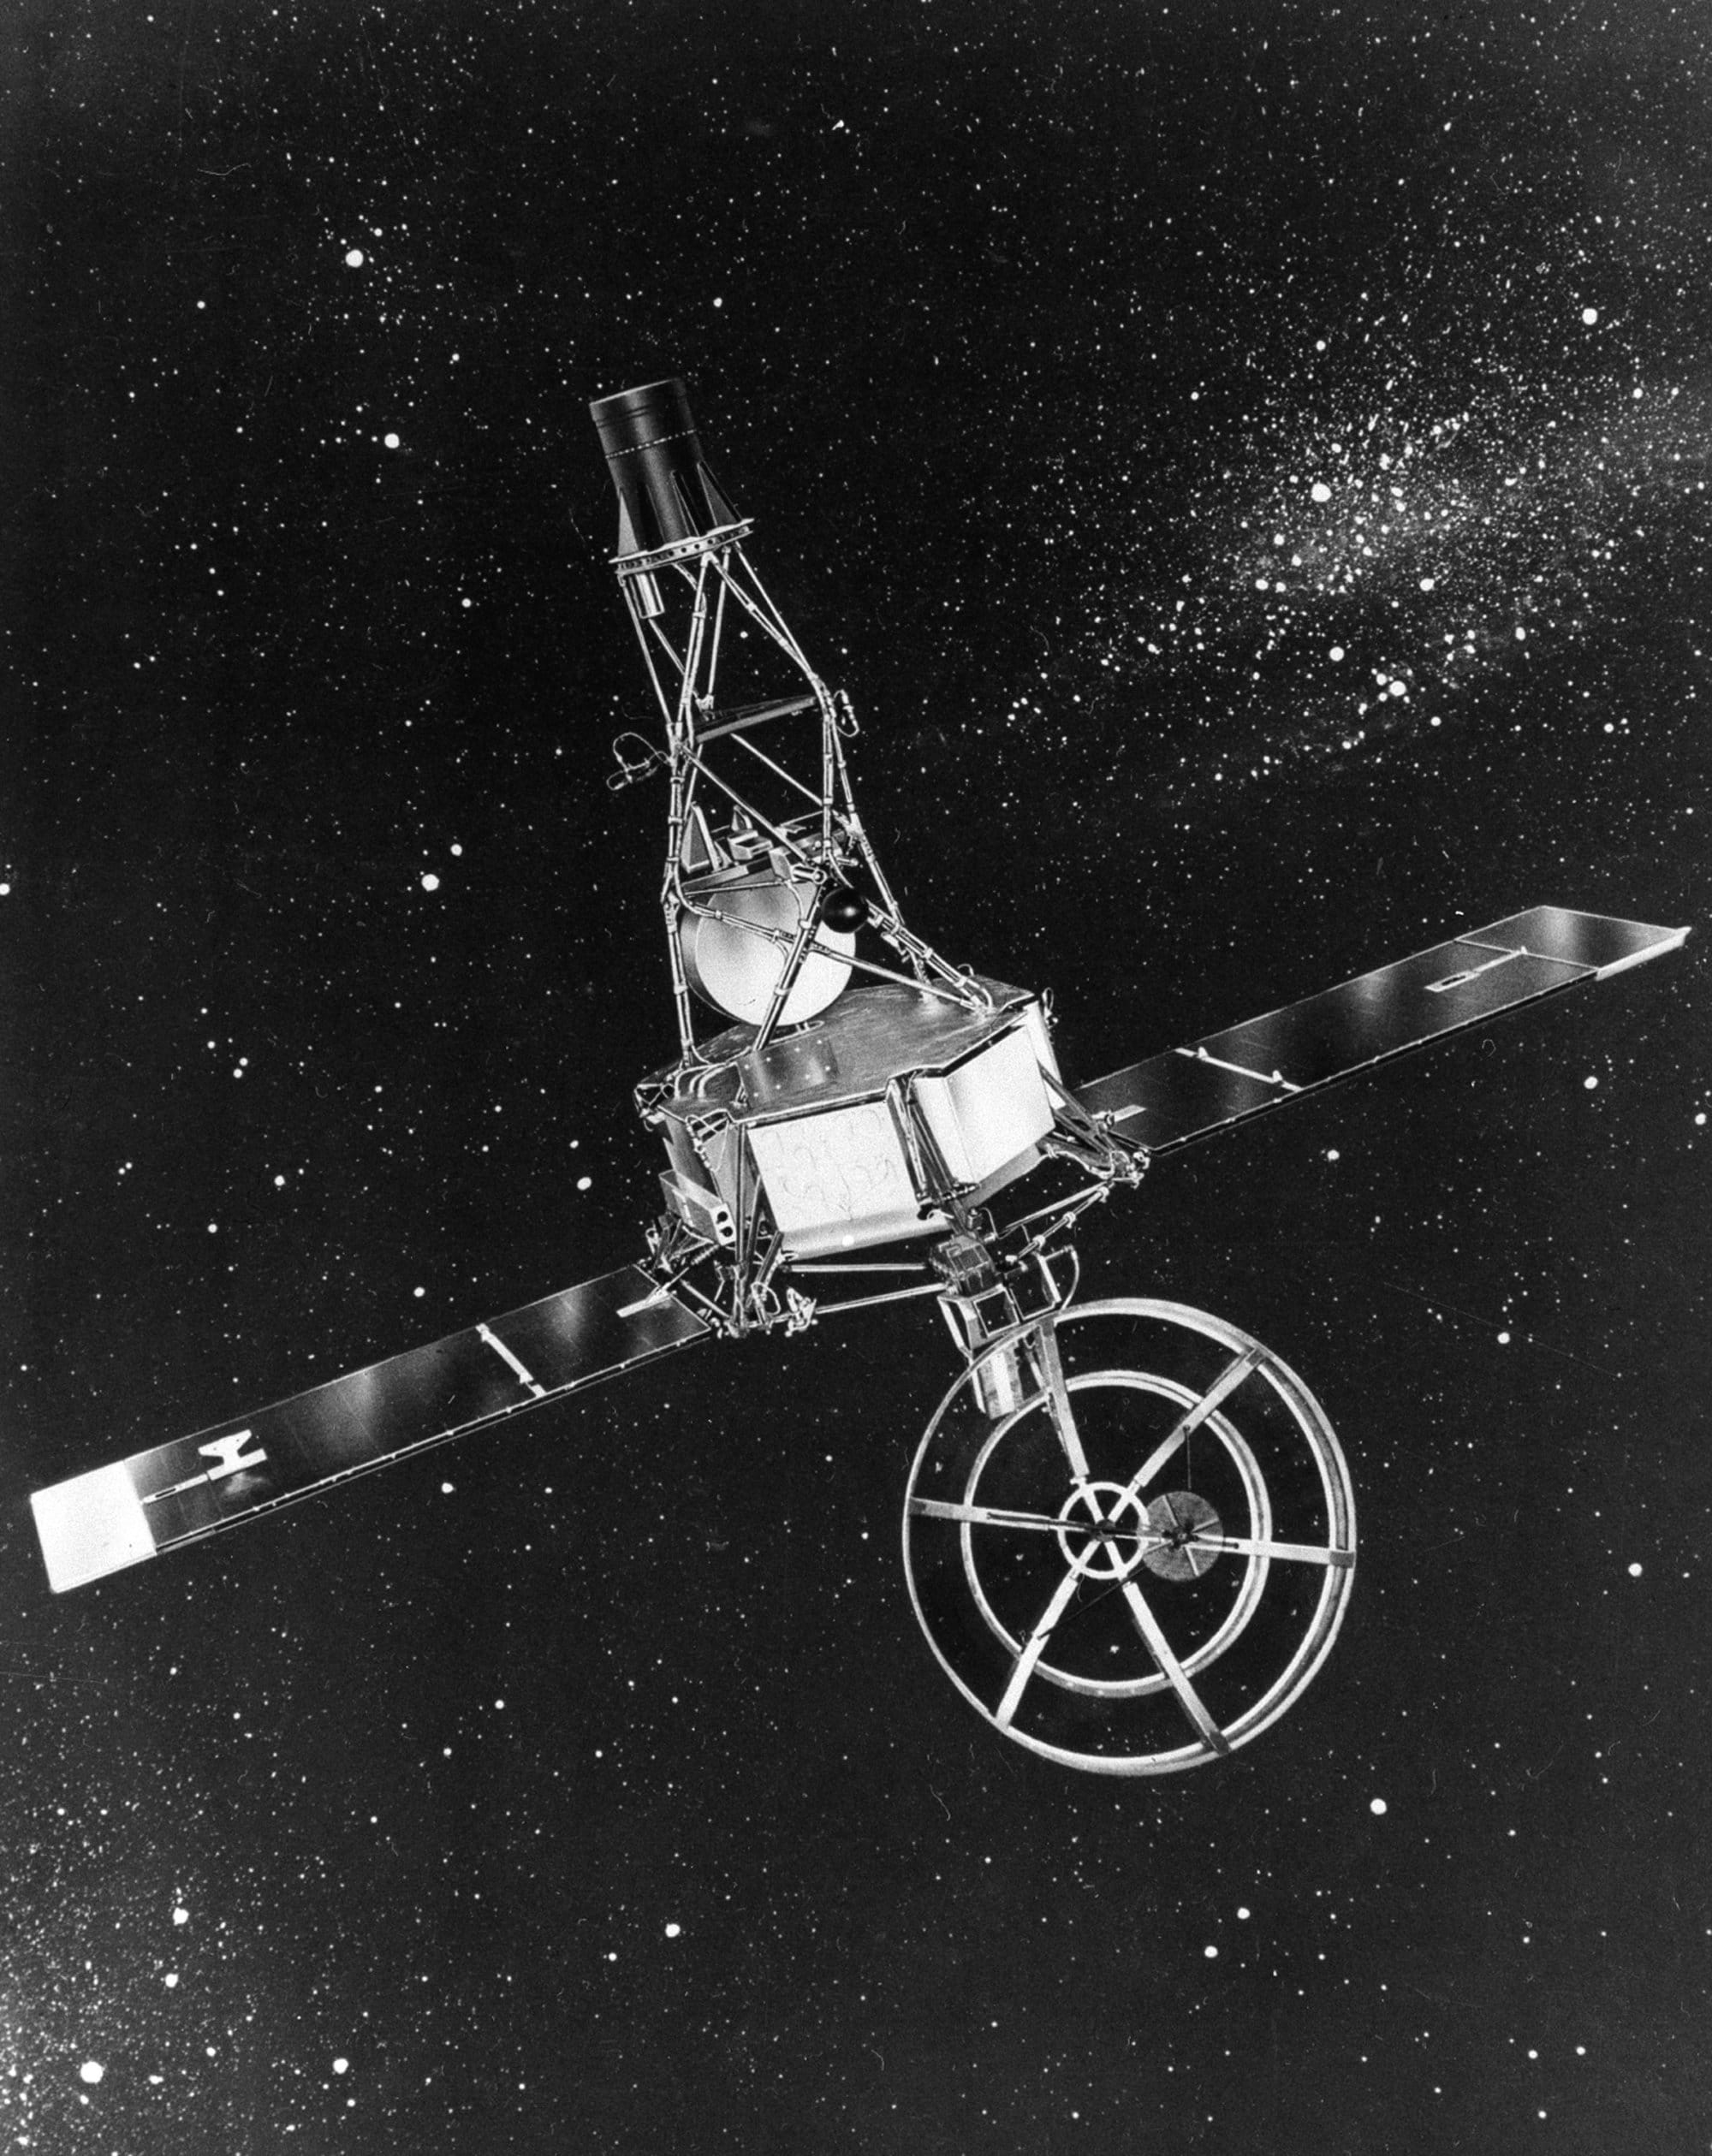 This is a Mariner 2 spacecraft that was hurled aloft this morning from Cape Canaveral, Fla., Aug. 27, 1962, on a 109-day flight toward the planet Venus.  An hour after the launch, a tracking station at Woomera, Australia, picked up signals that indicated the spacecraft had unfolded properly and that the solar panels were supplying power to the craft's batteries.  (AP Photo/NASA)